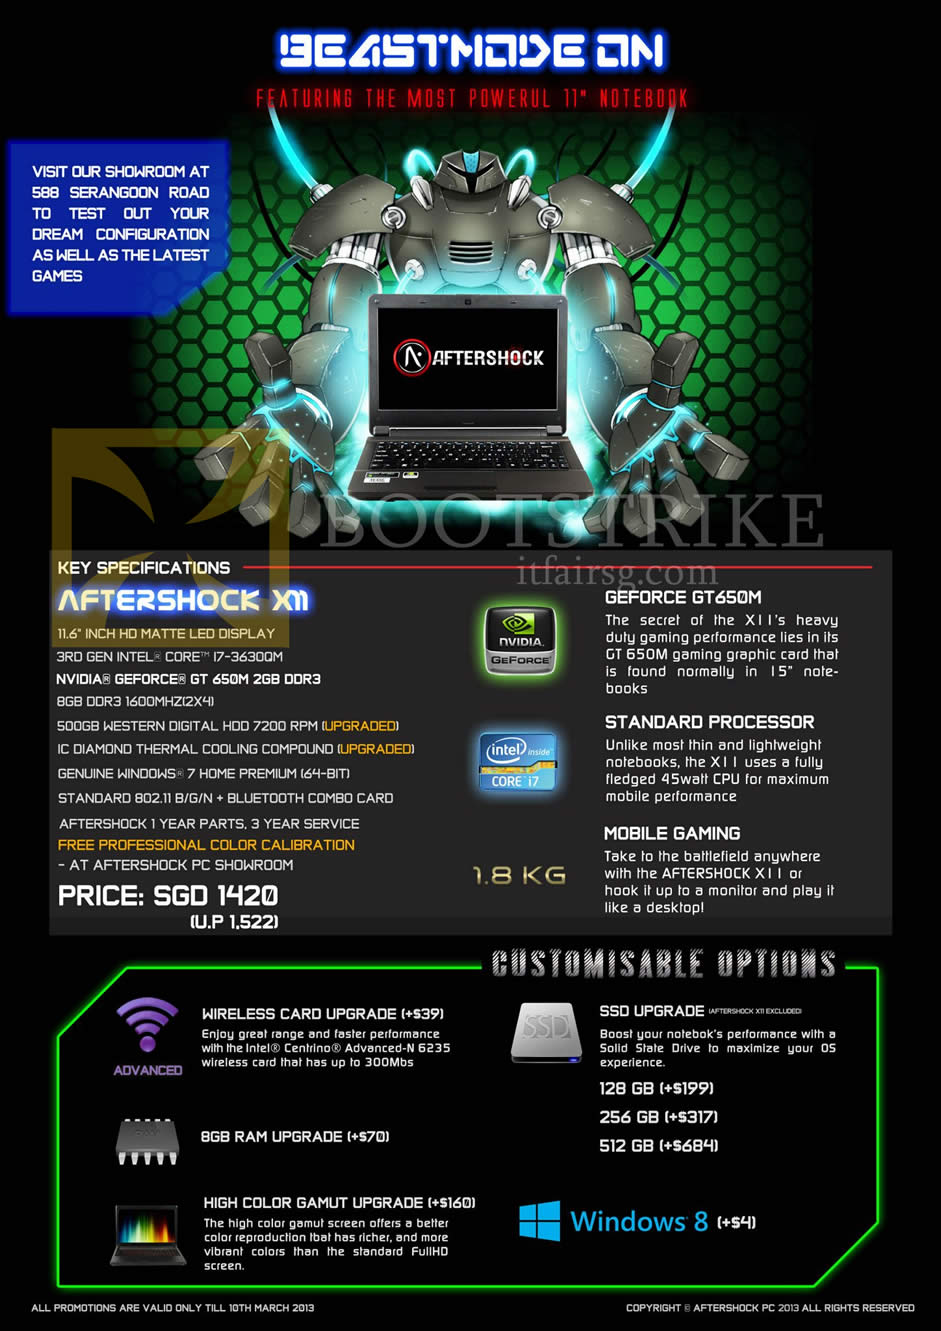 IT SHOW 2013 price list image brochure of Aftershock X11 Gaming Notebook, Upgrades, Options